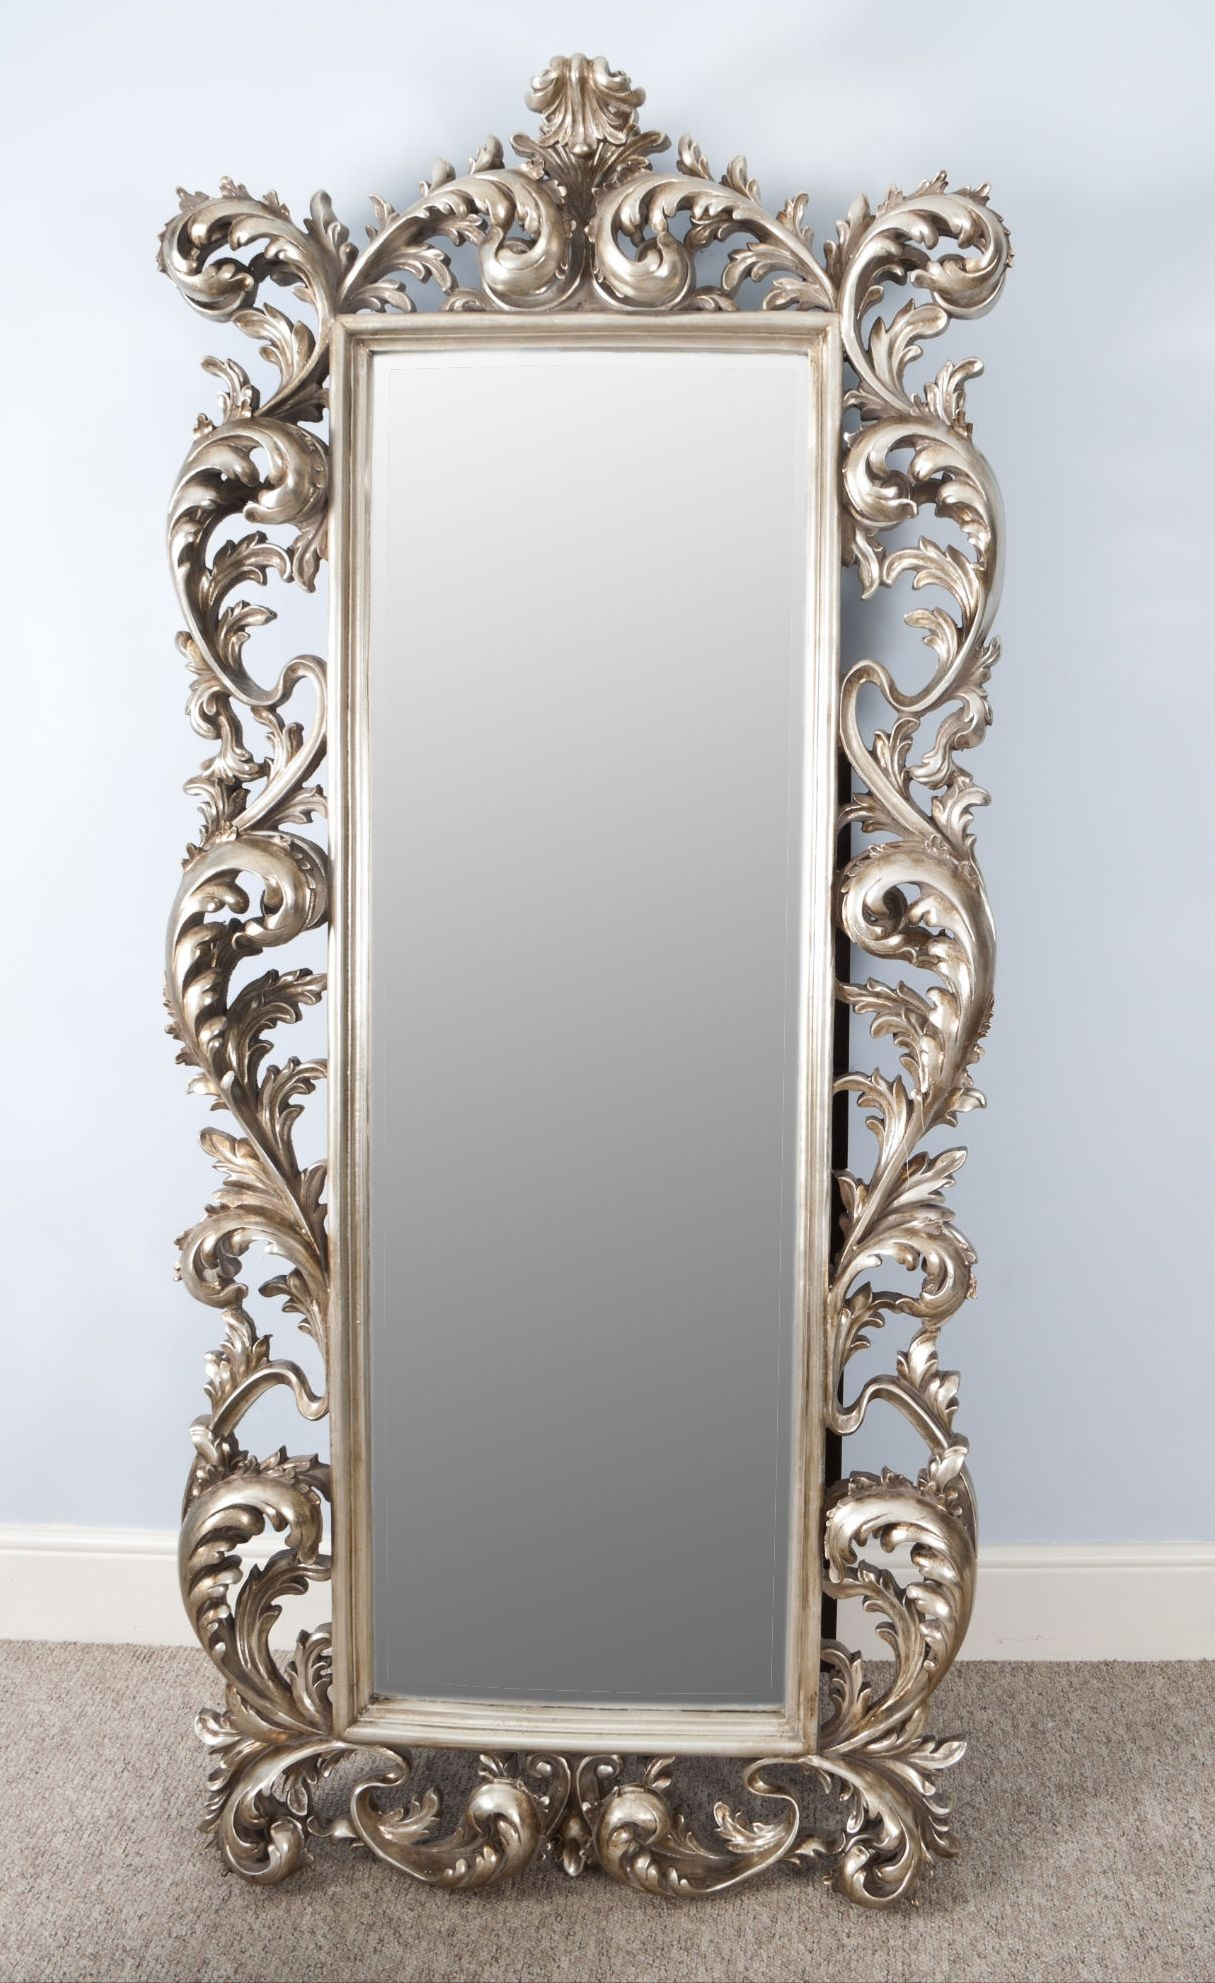 Splendid White Framed Wall Mirror Also Narrow Wall Mirror With Big In Fancy Mirrors For Sale (Image 14 of 14)